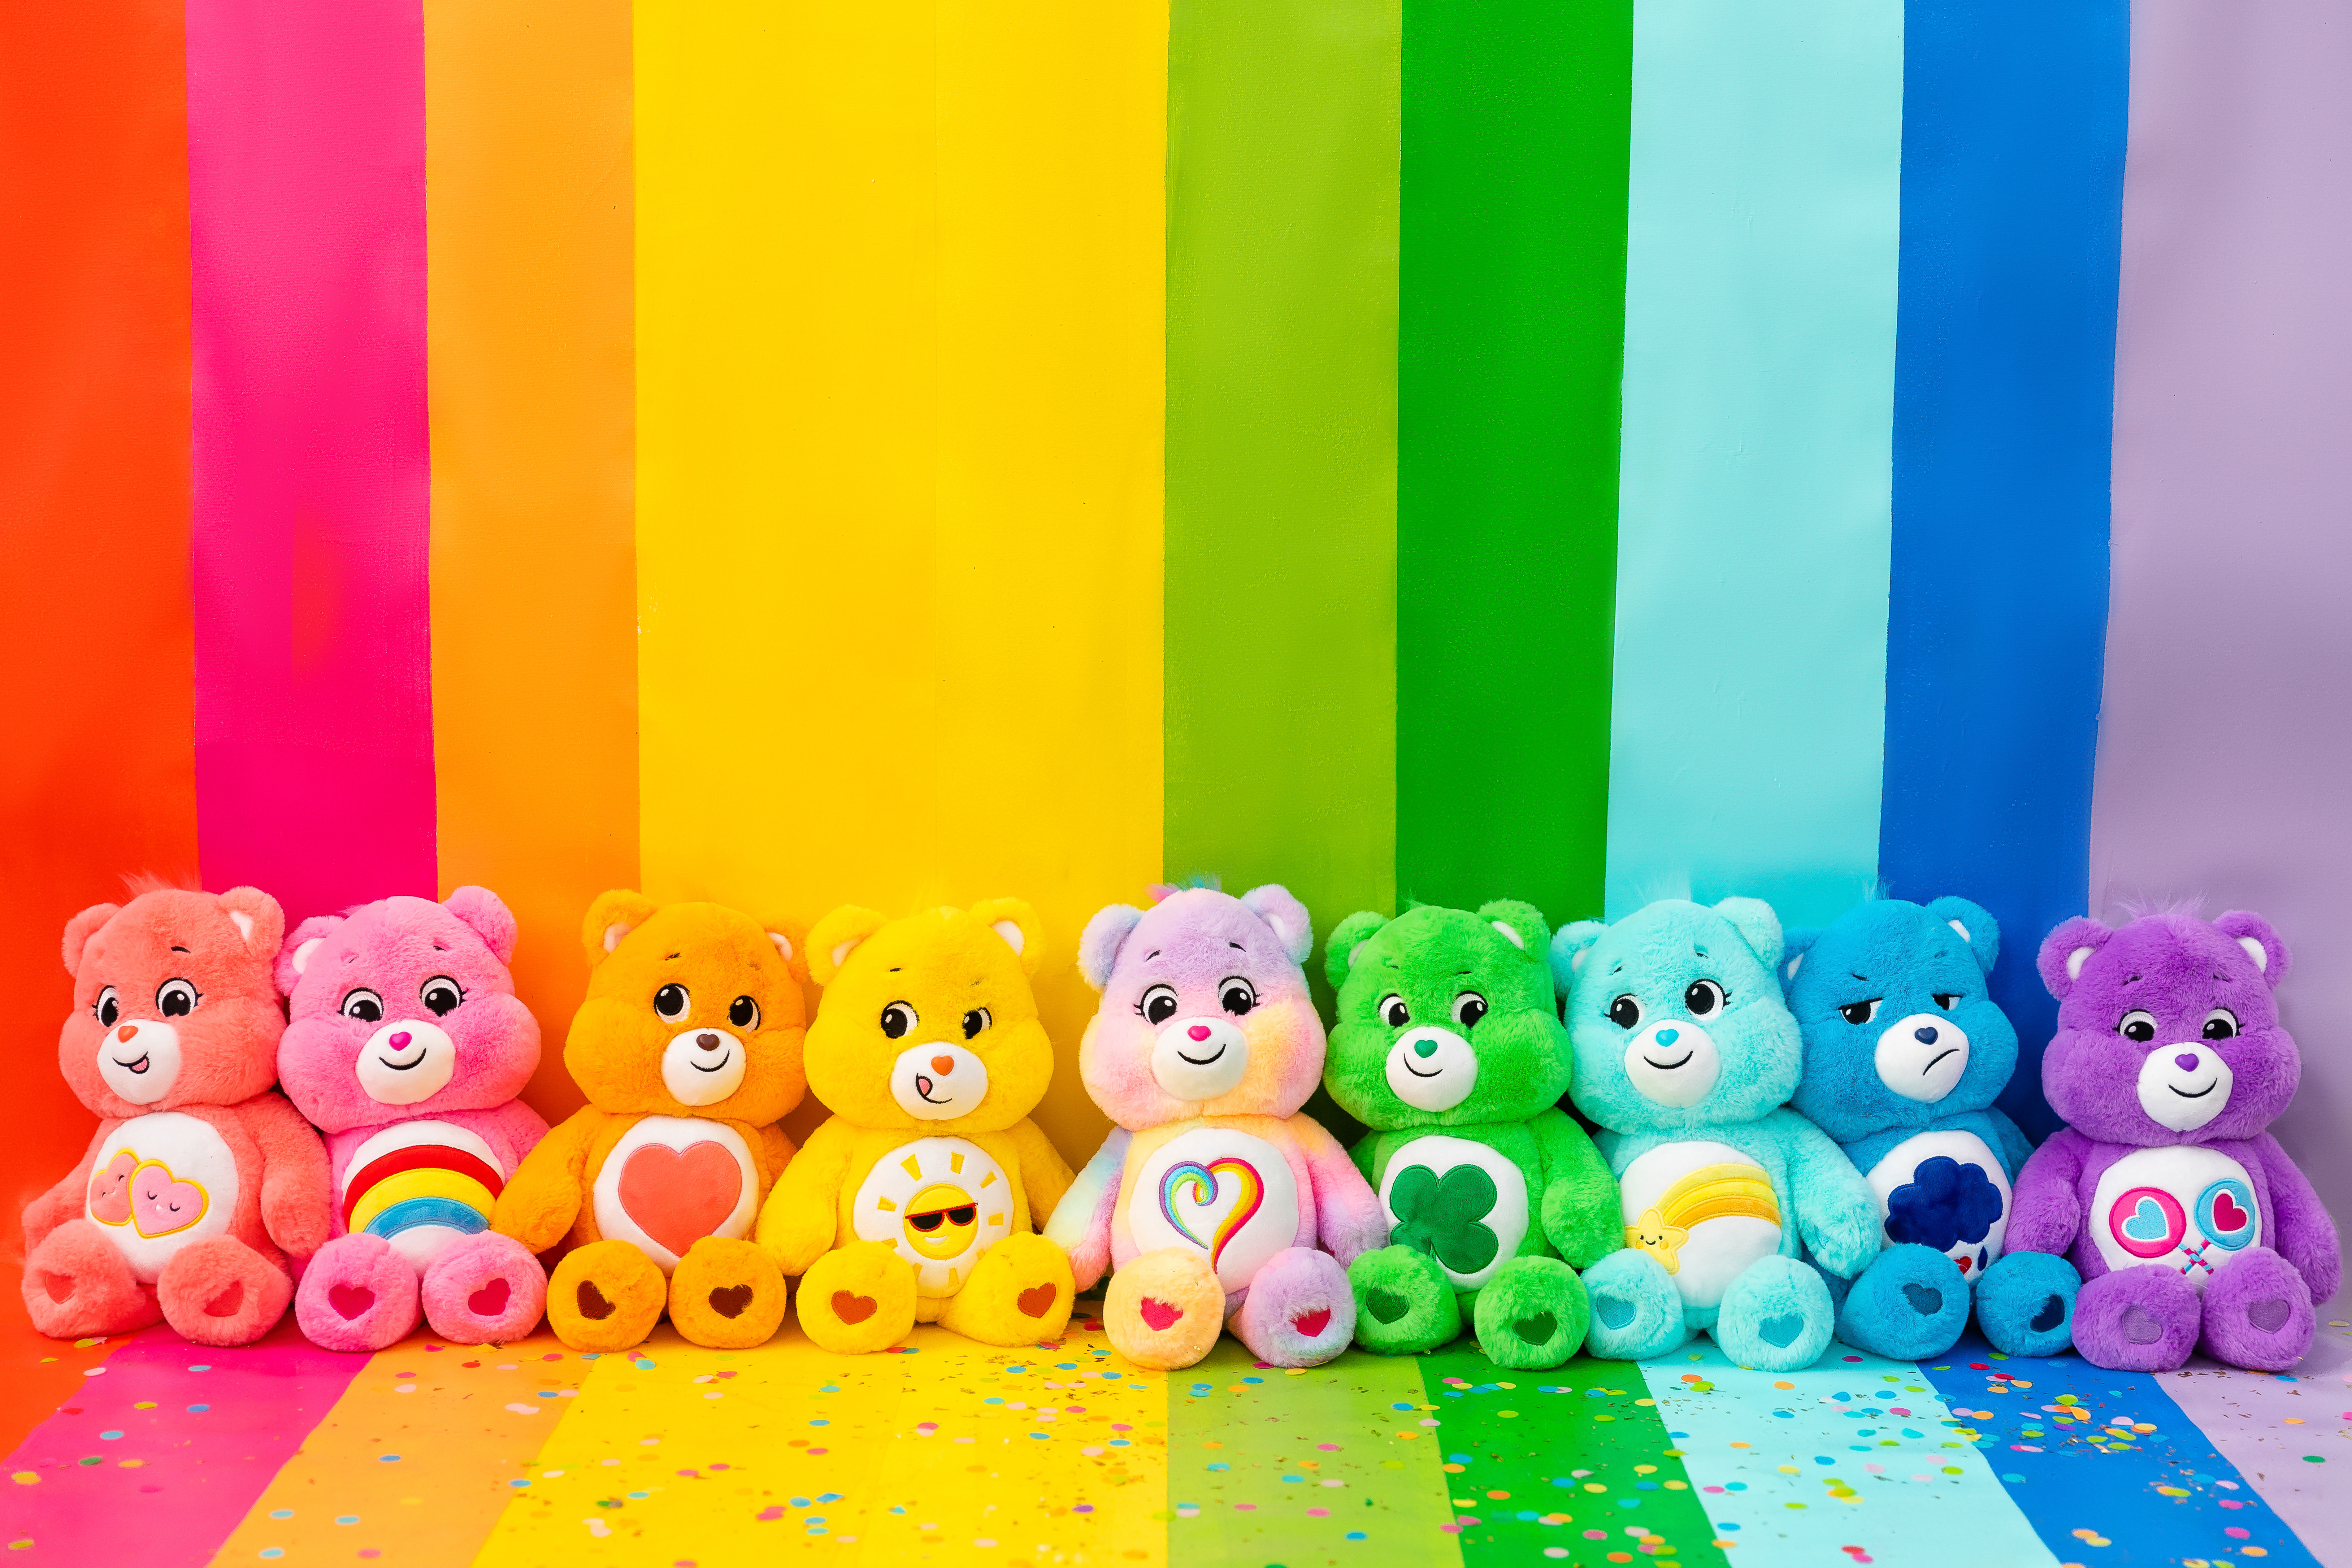 House_of_Fete_Care_Bears-2